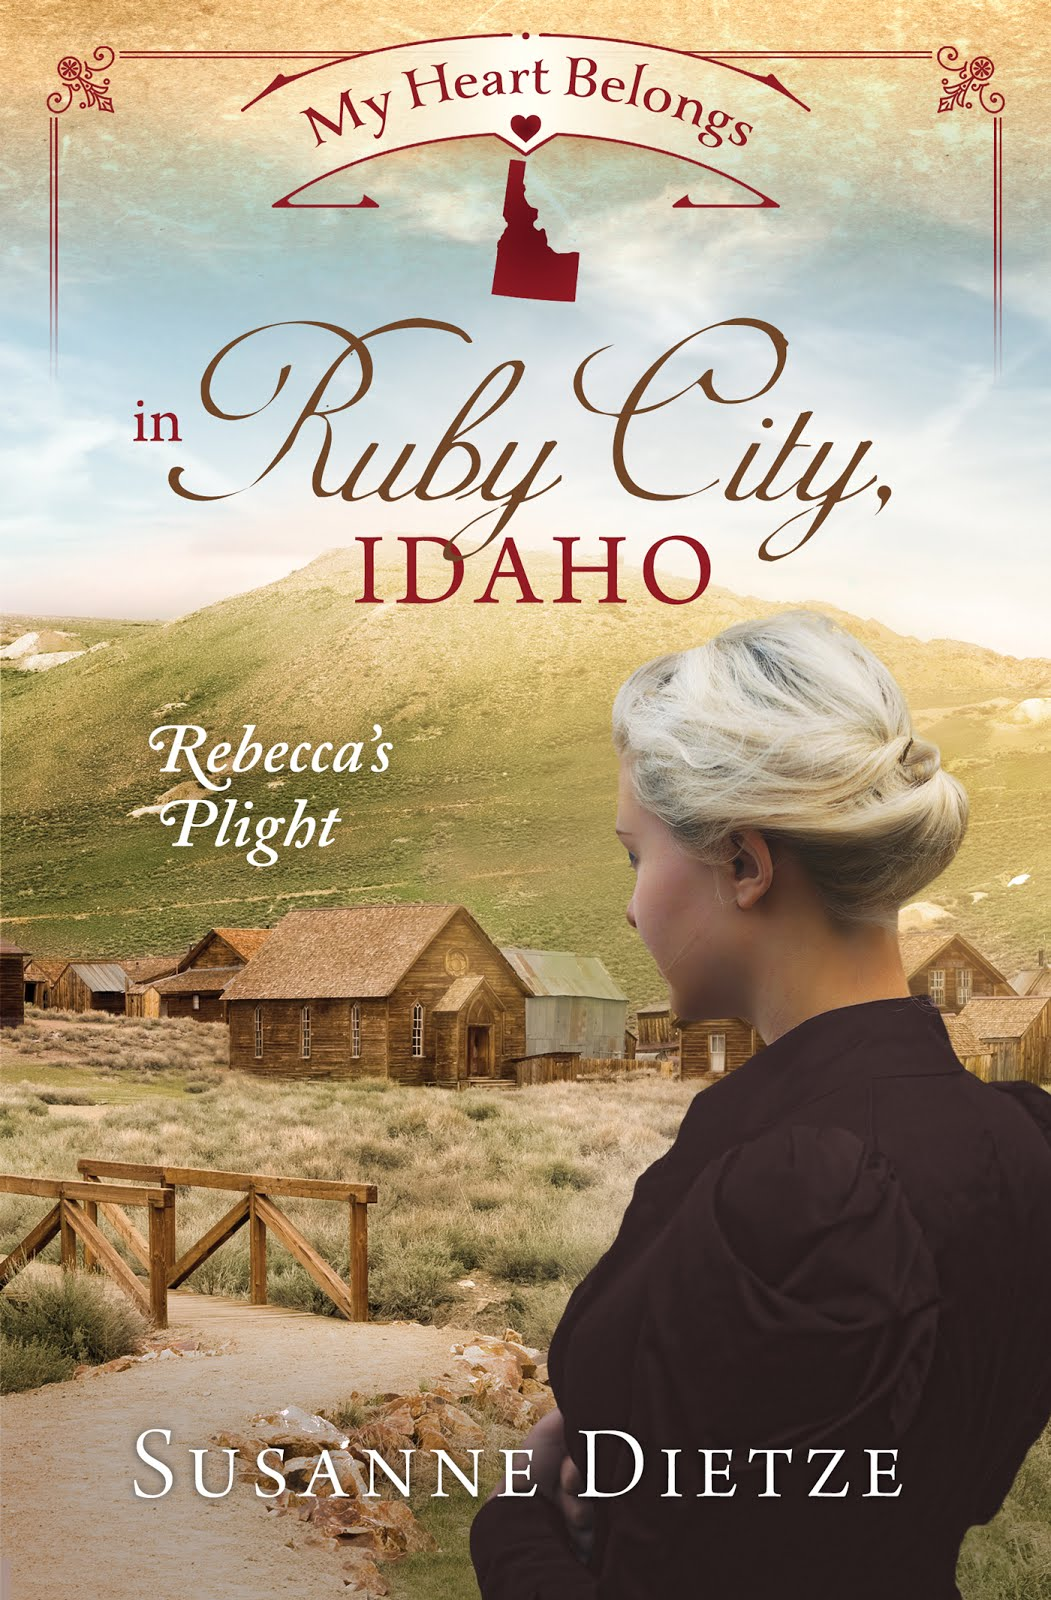 My Heart Belongs in Ruby City, Idaho